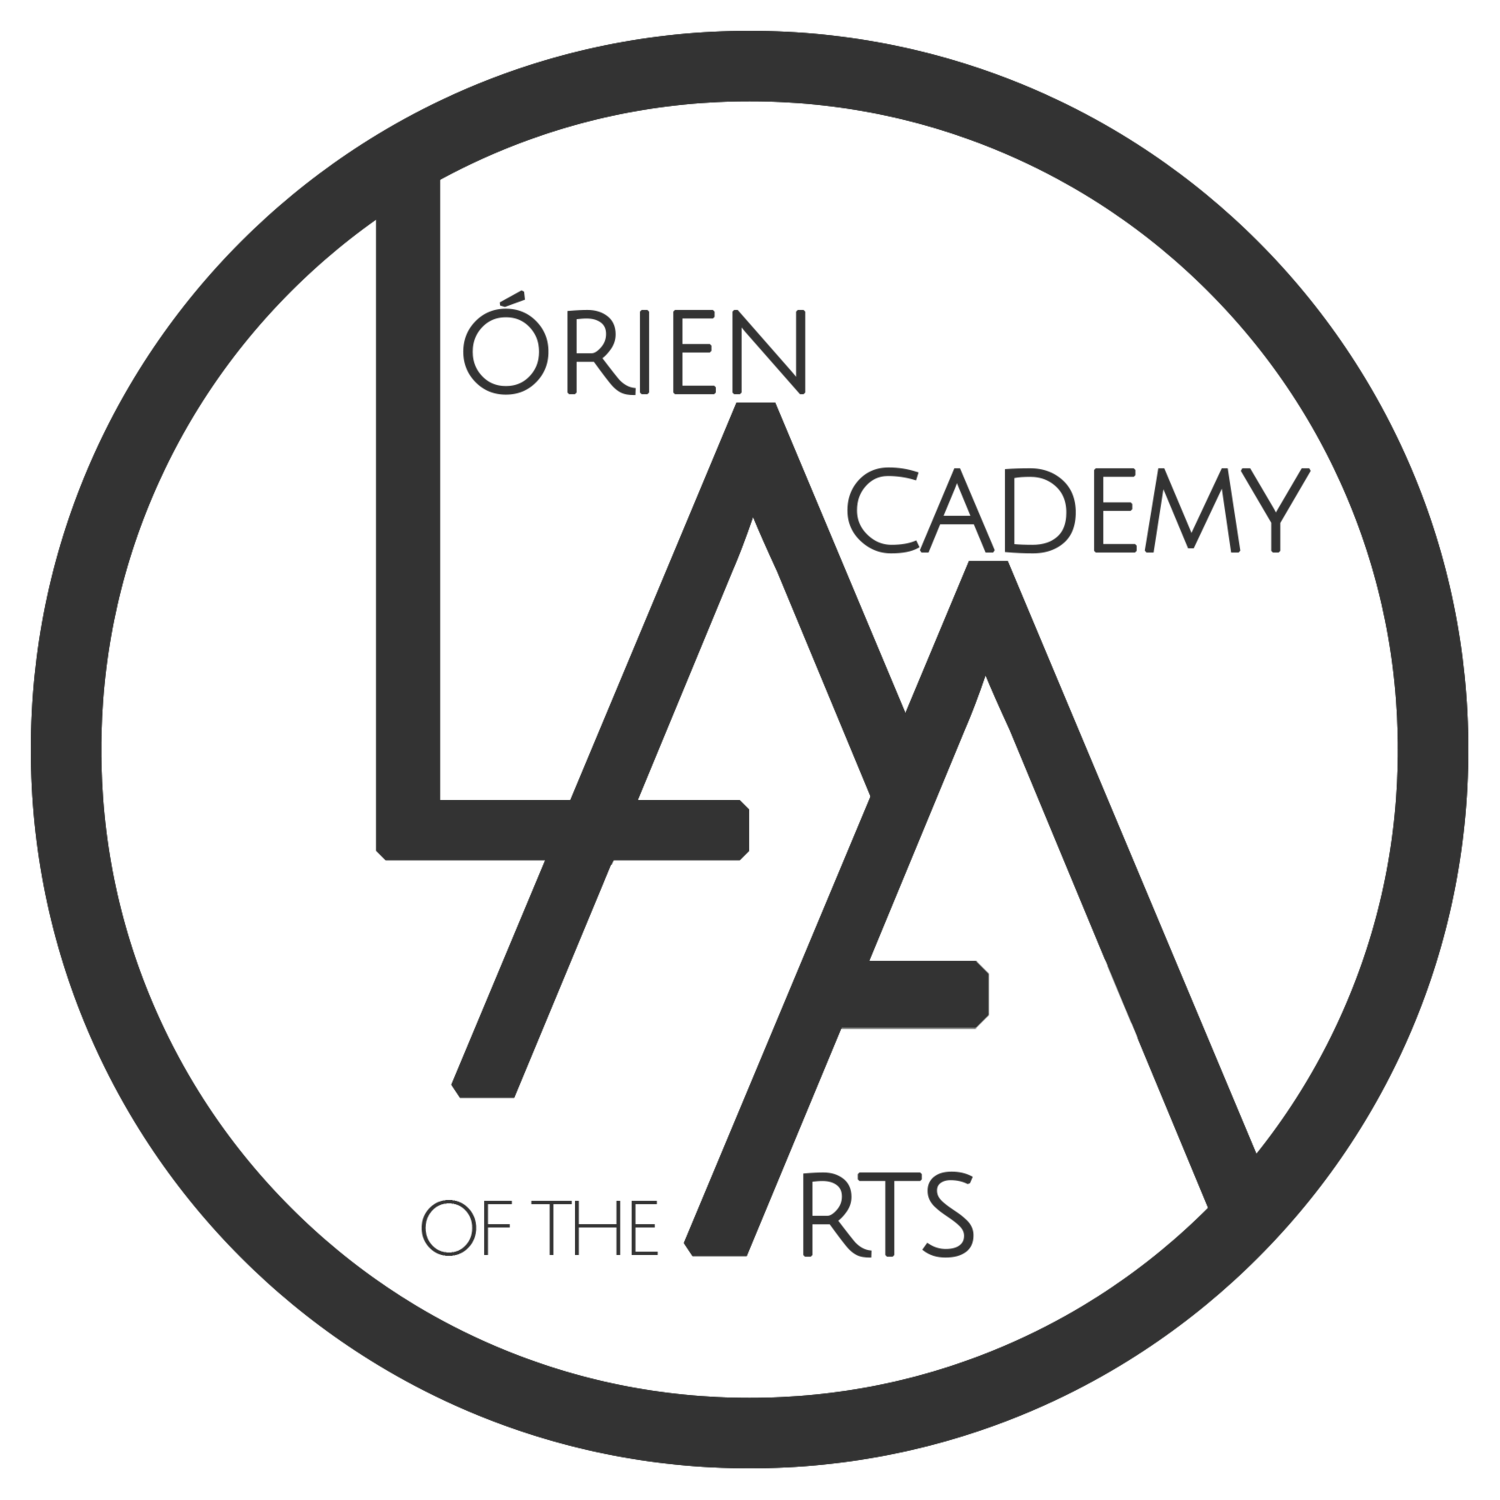 Lórien Academy of the Arts